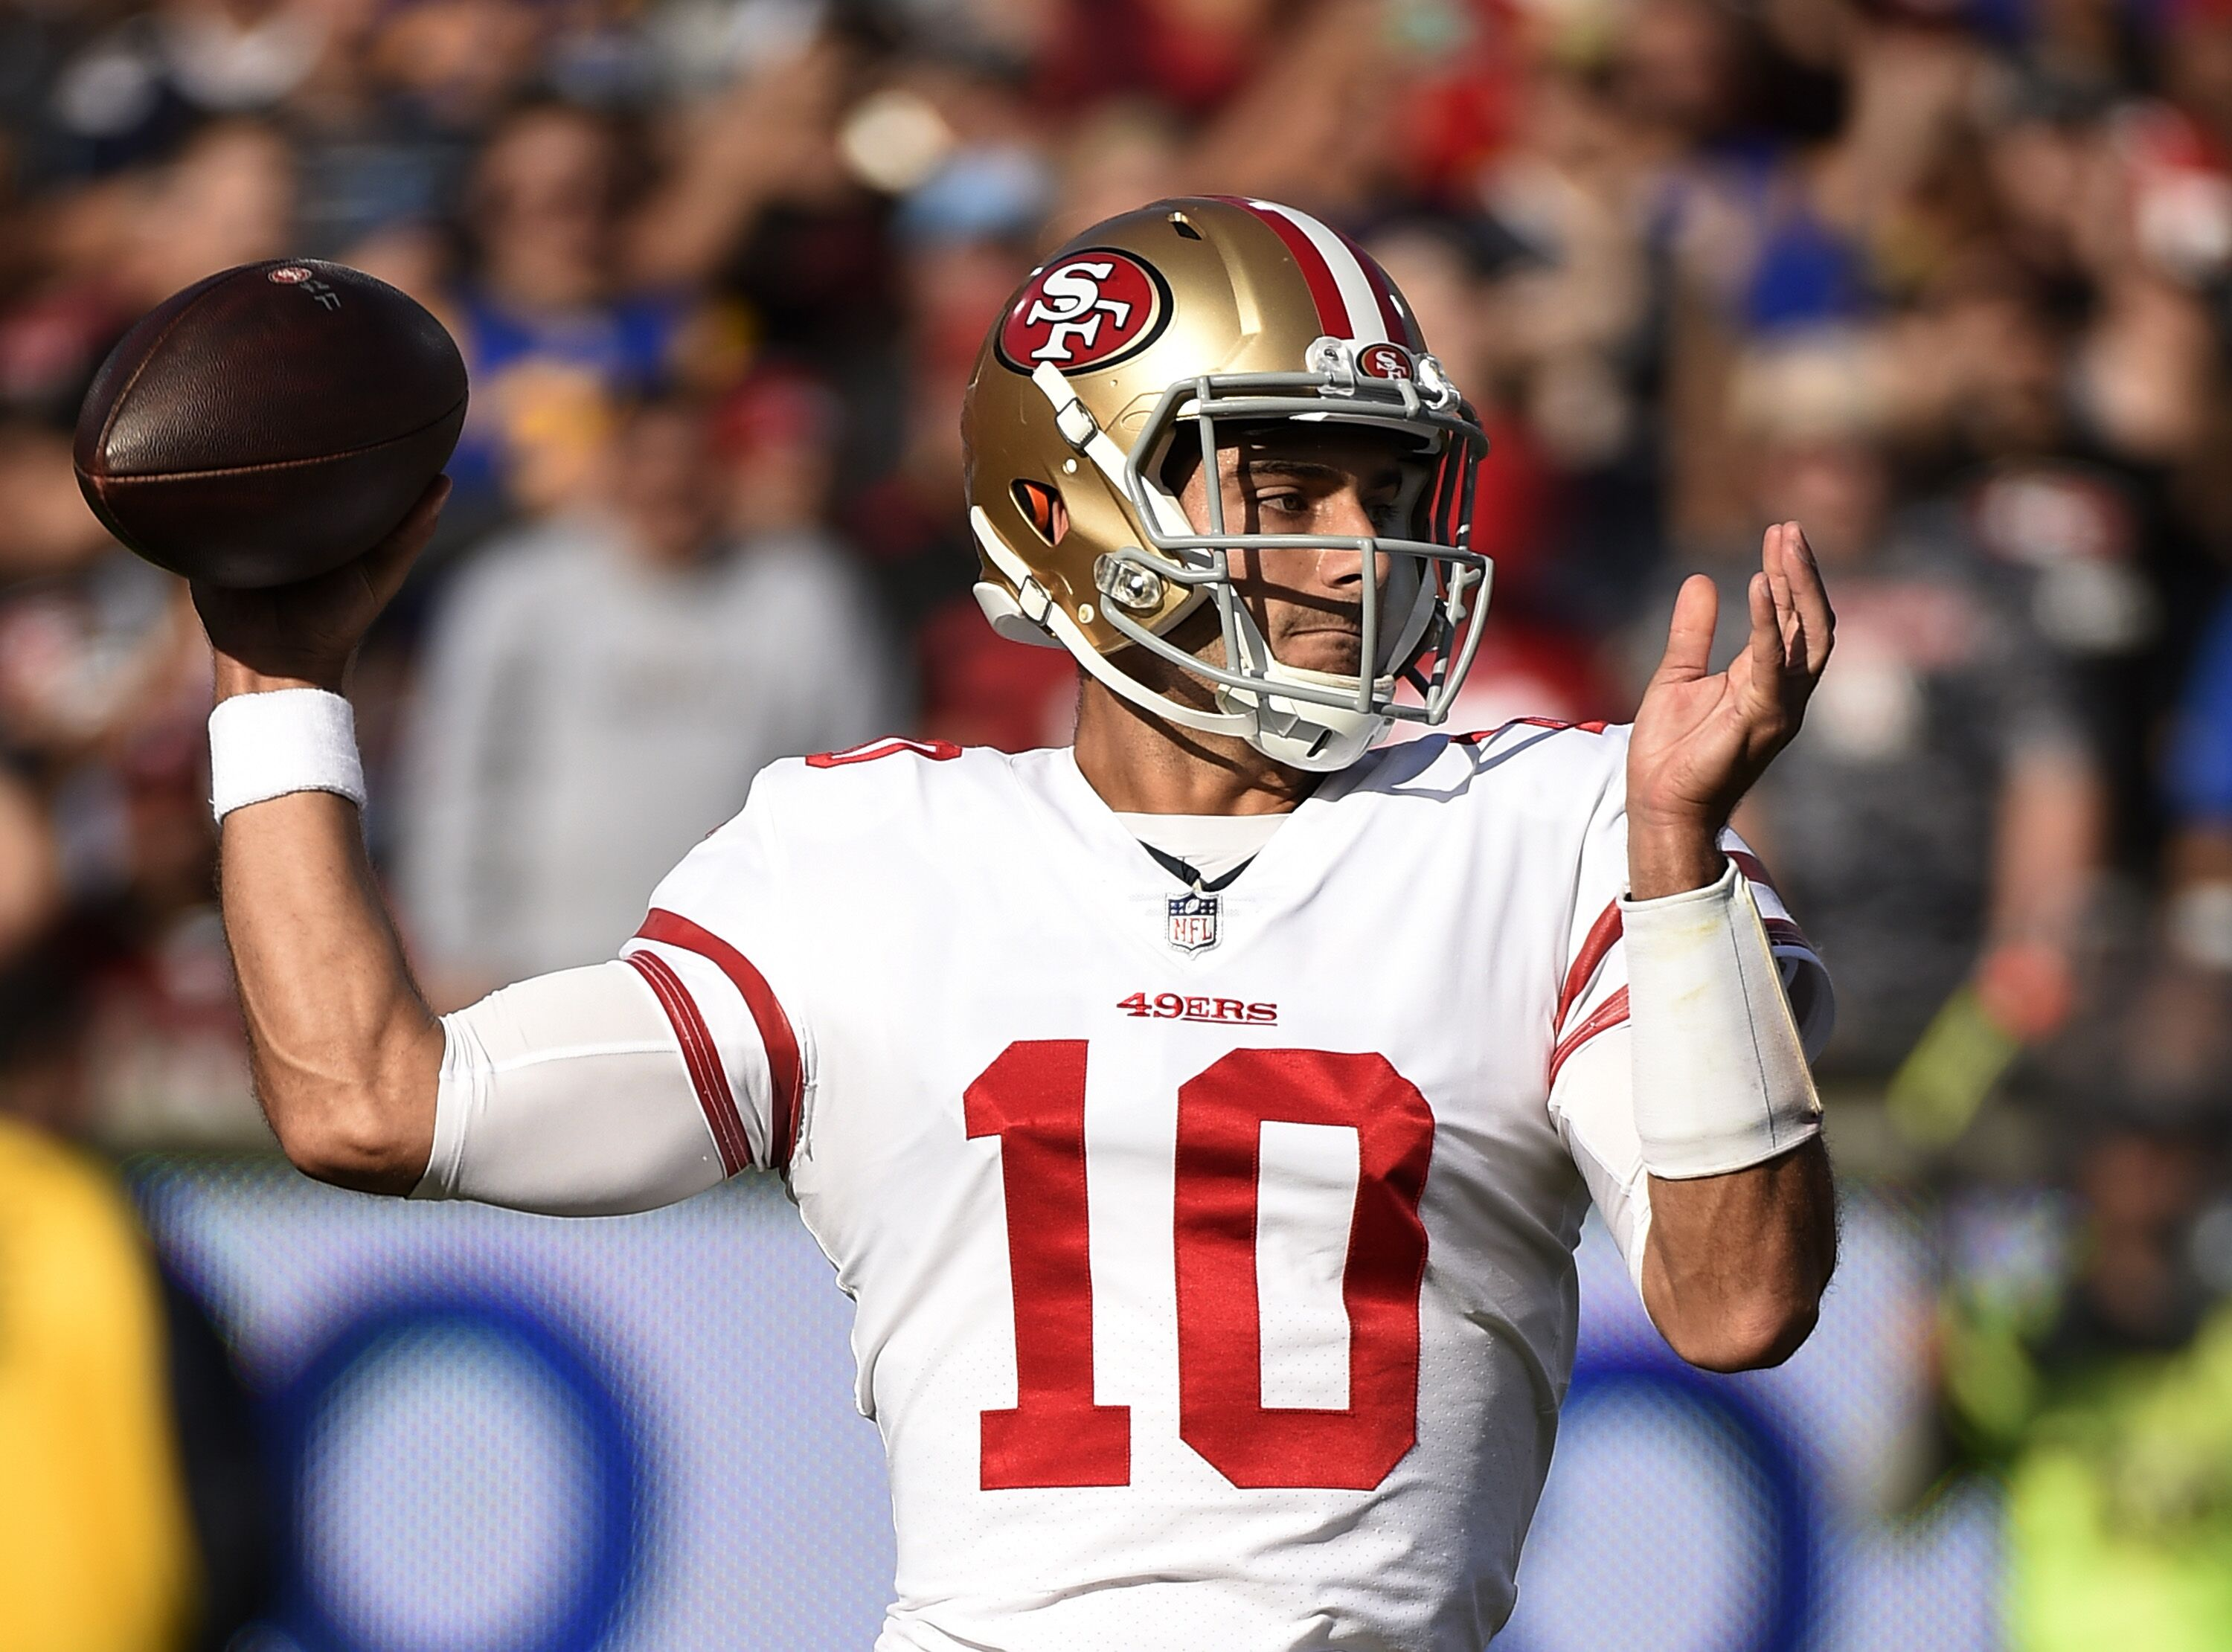 49ers vs. Redskins: Sunday is Jimmy Garoppolo's time to shine